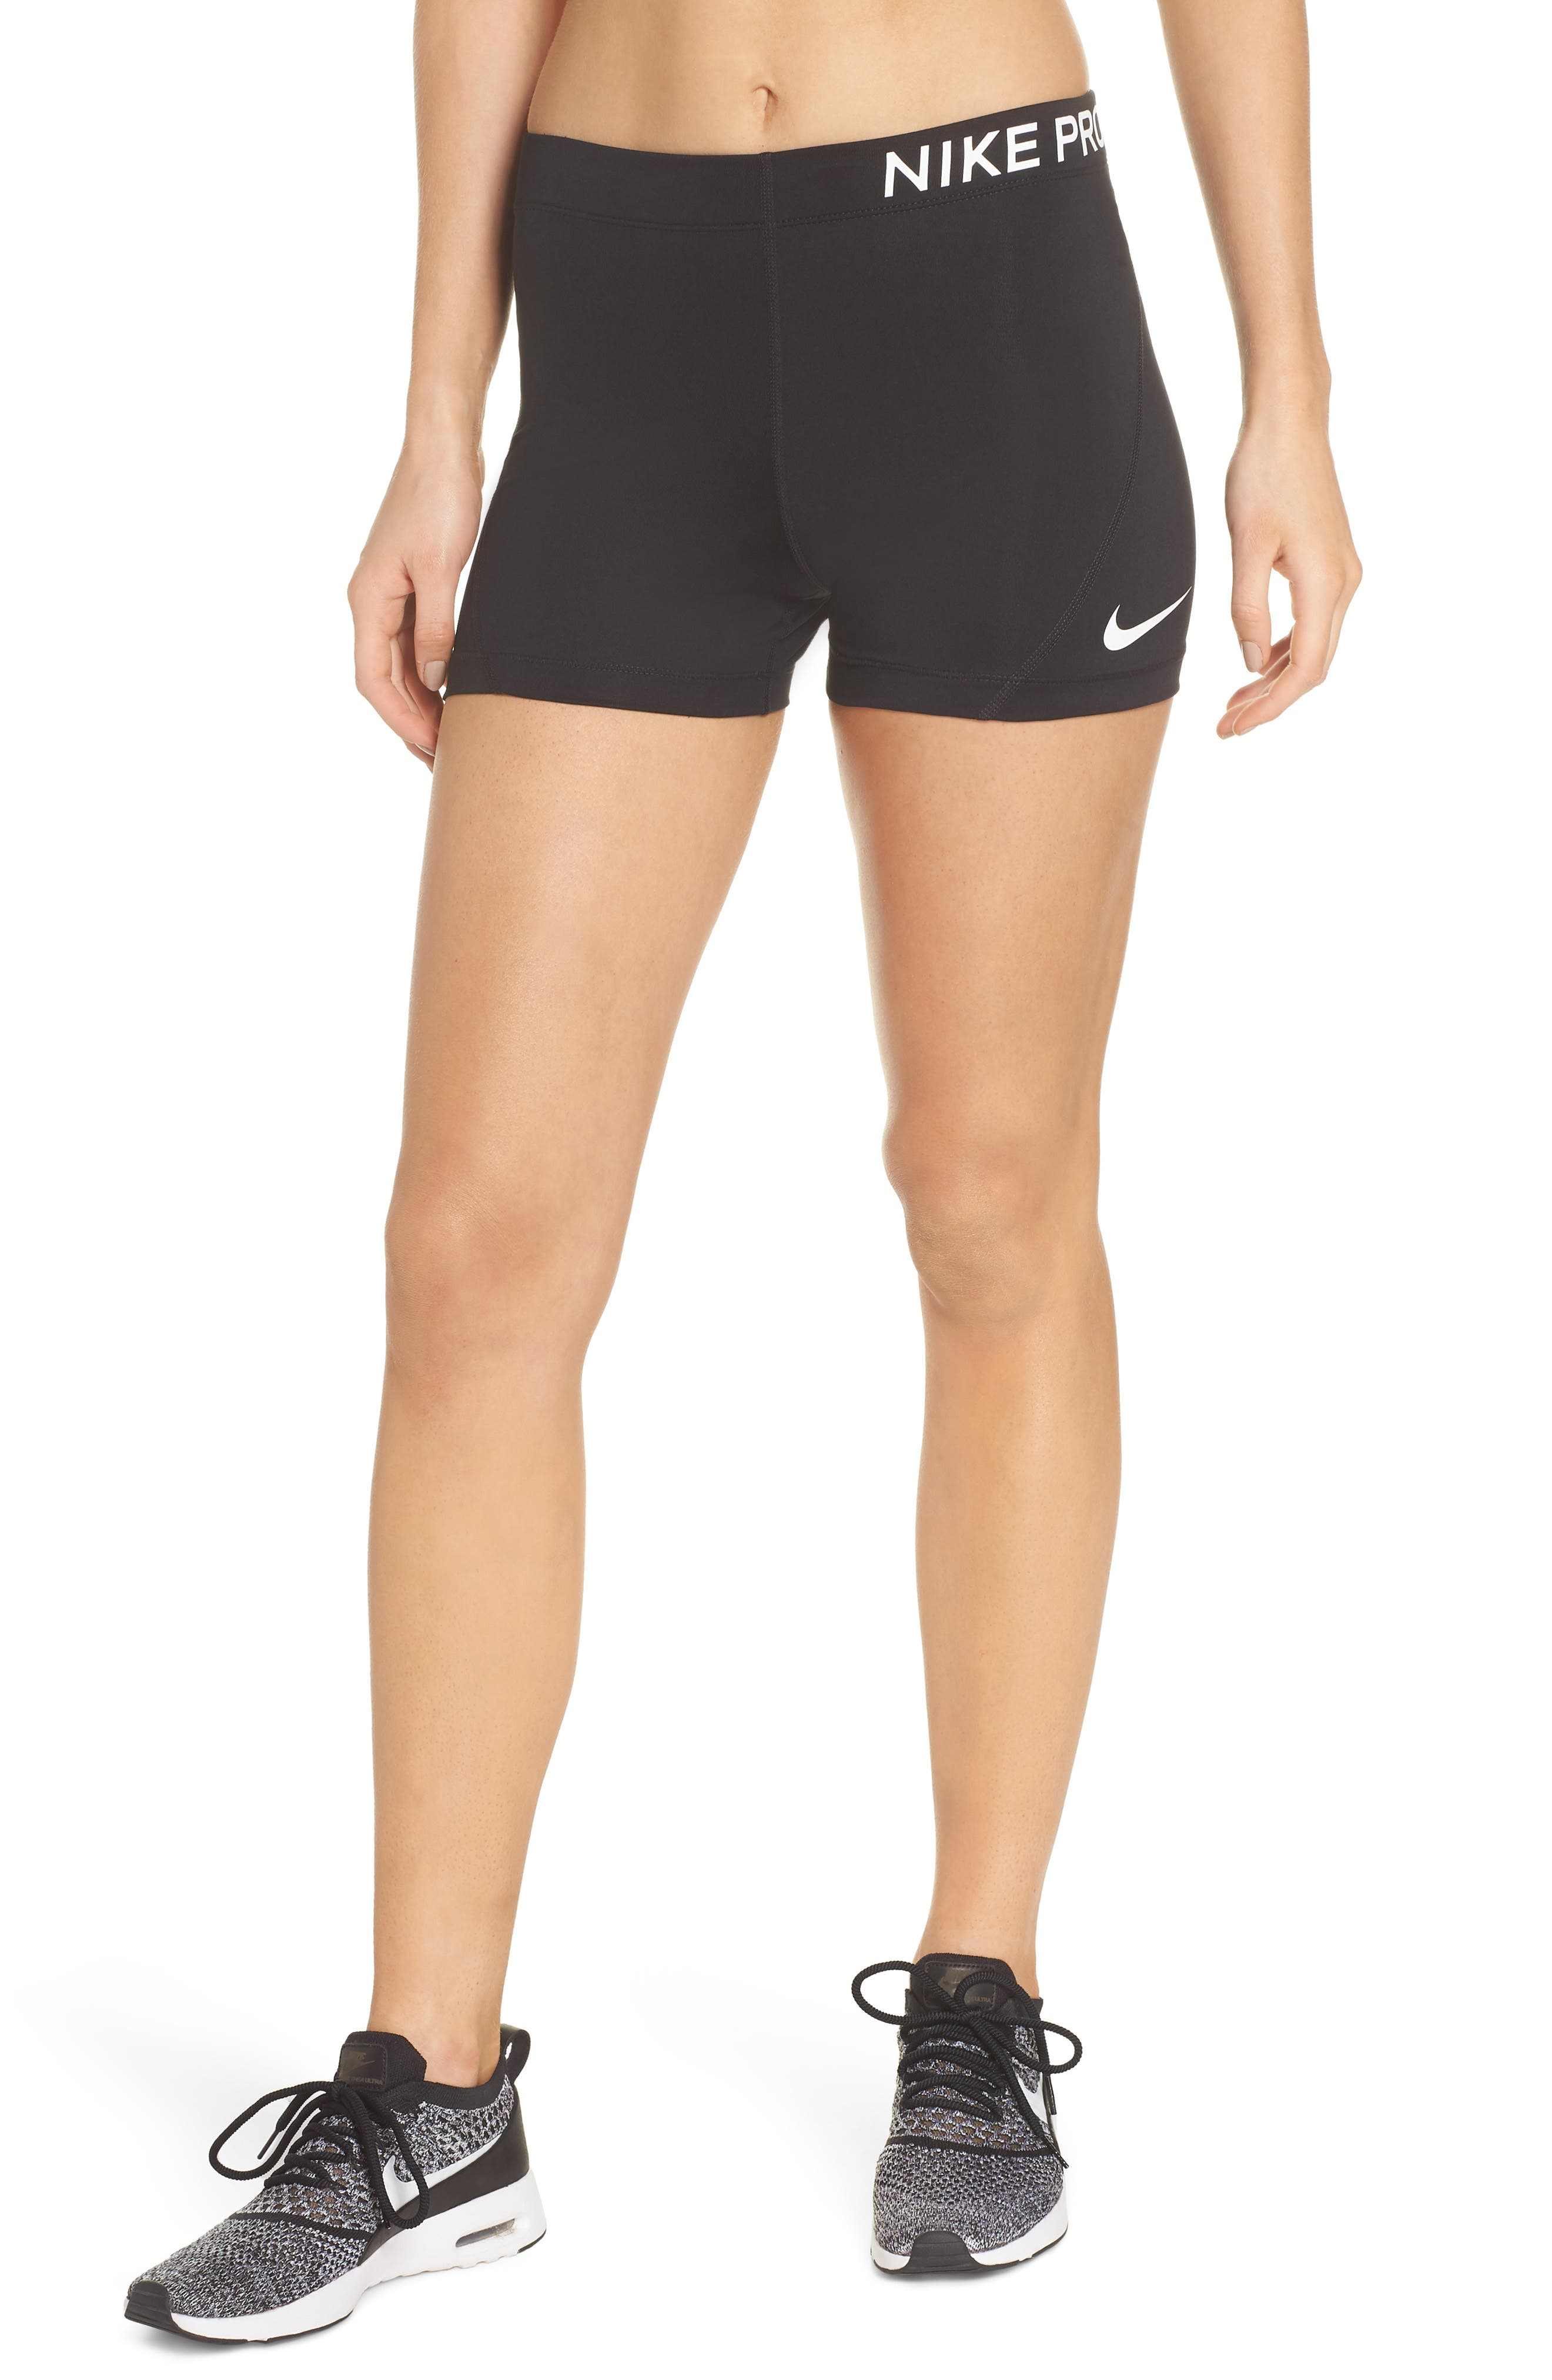 Pro Short Shorts,                         Main,                         color, BLACK/ WHITE